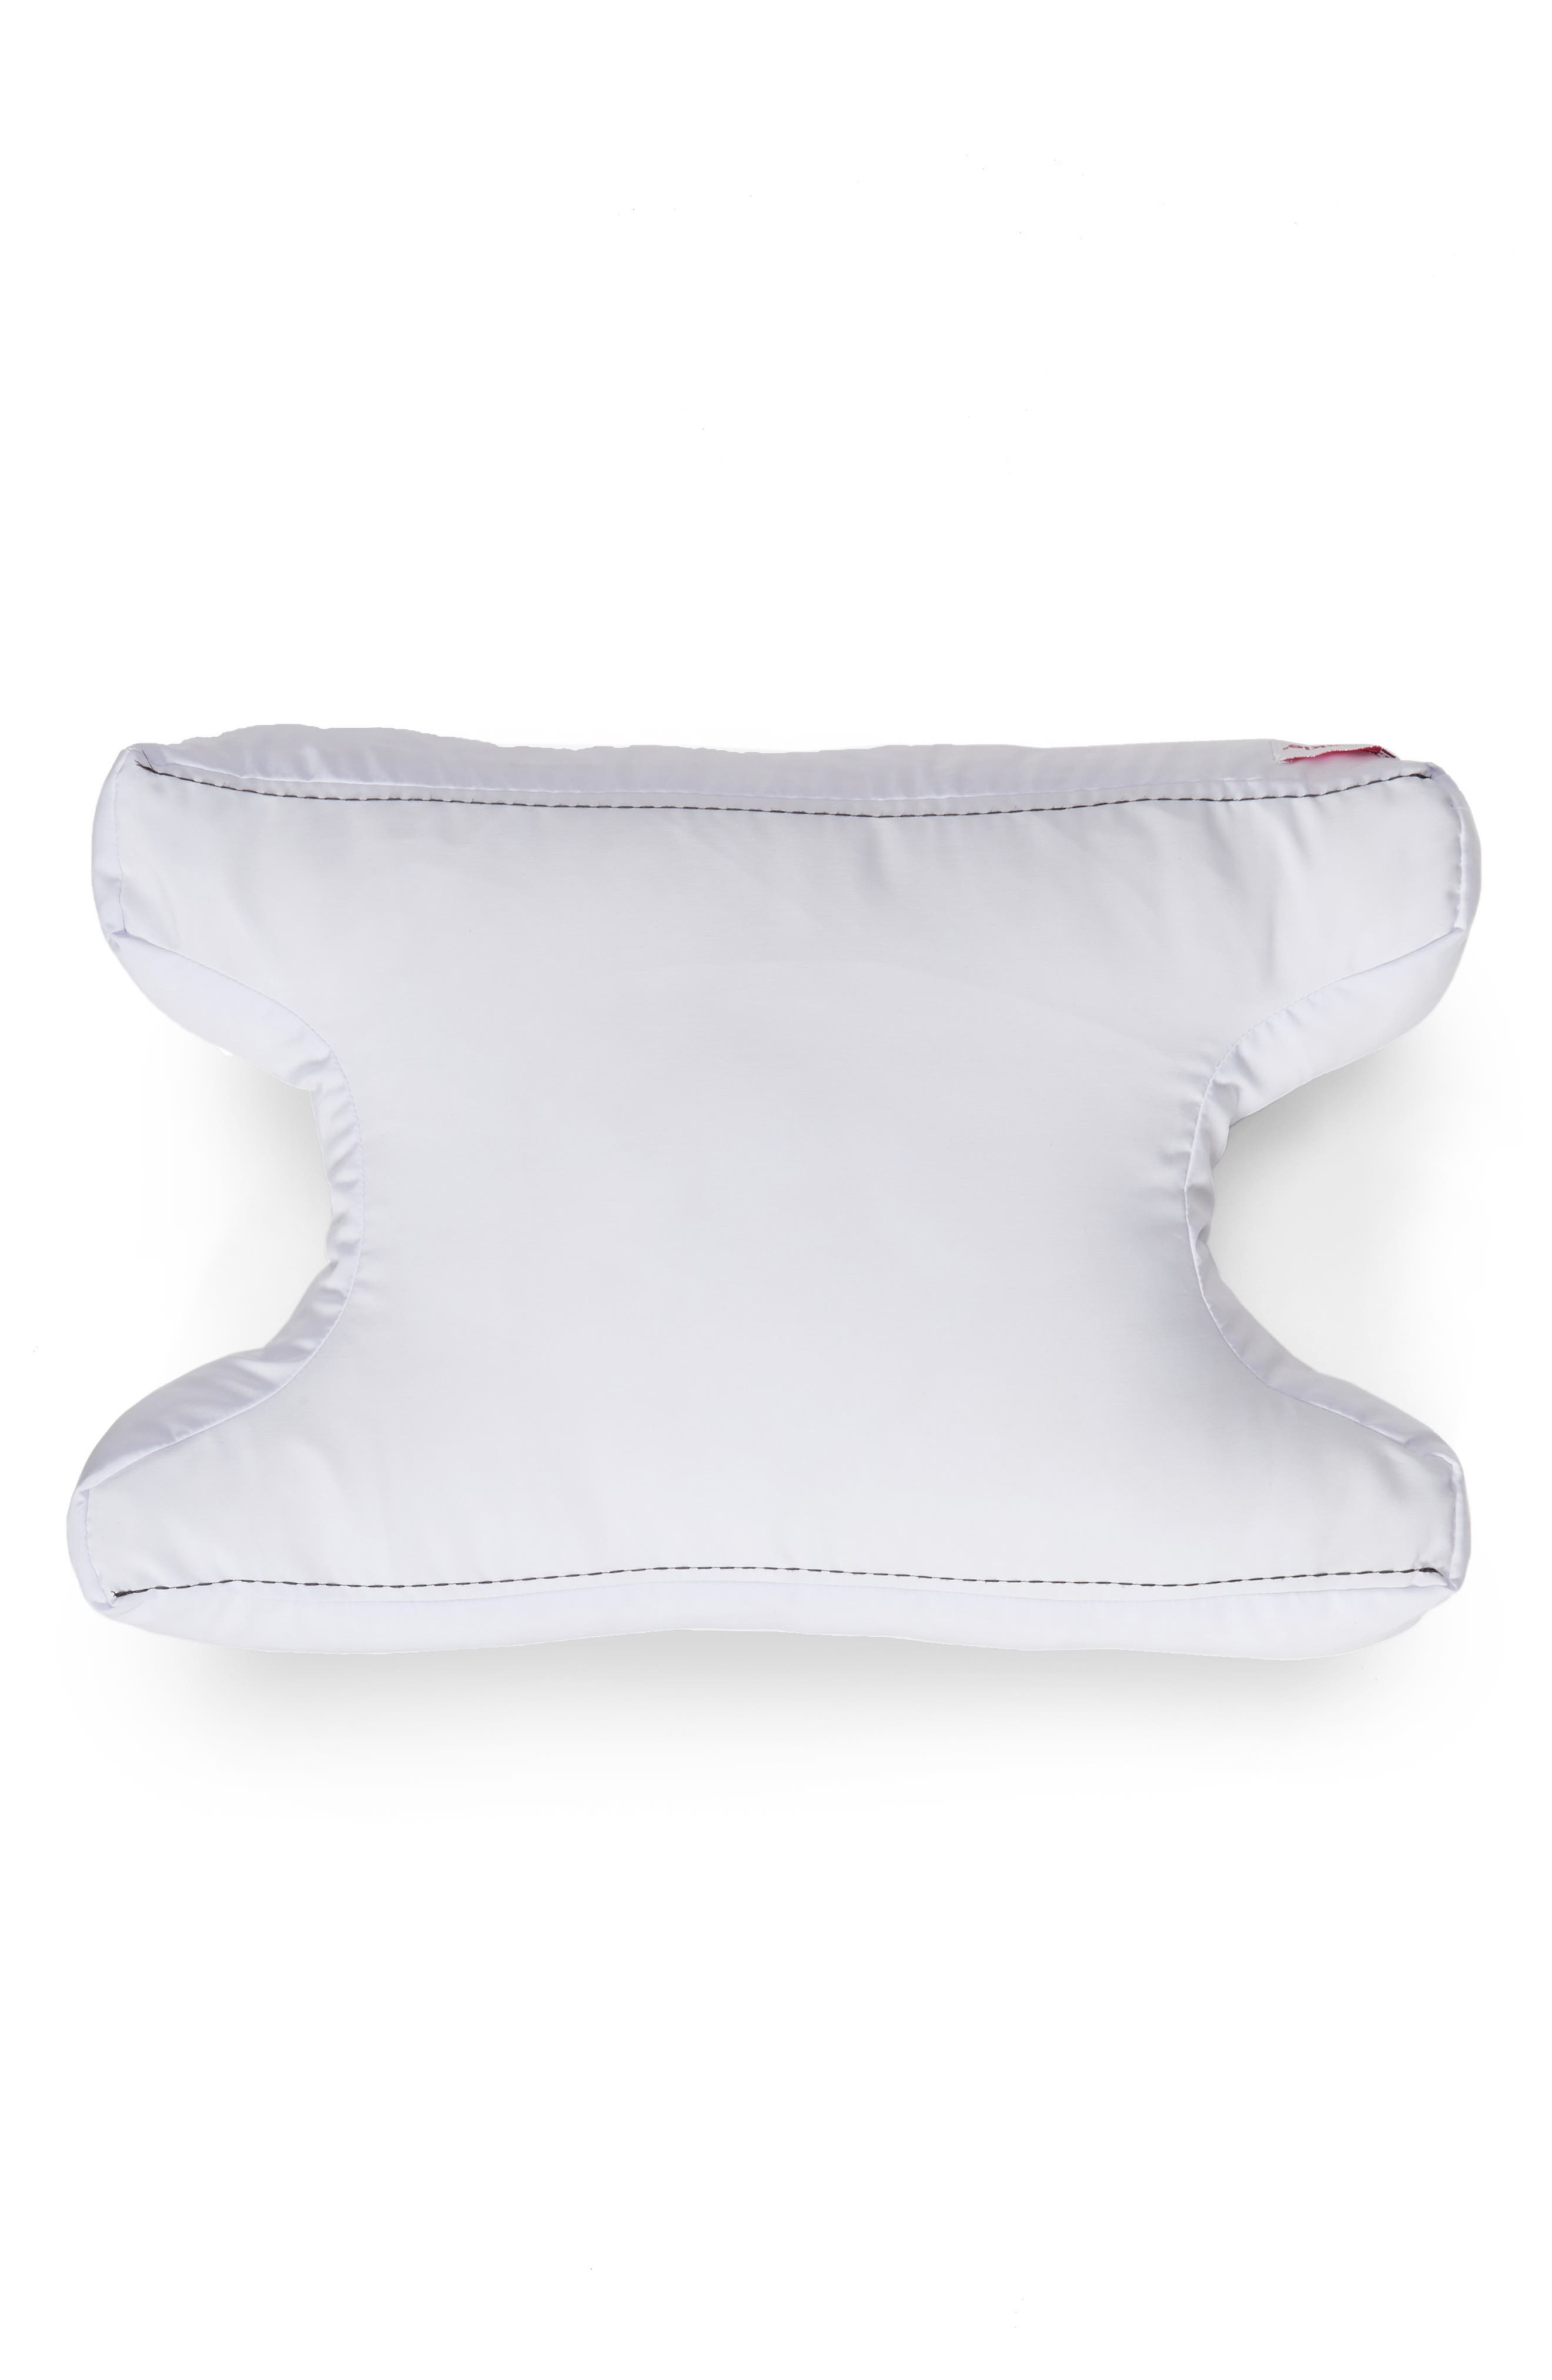 The Pil-ookie® Beauty Pillow